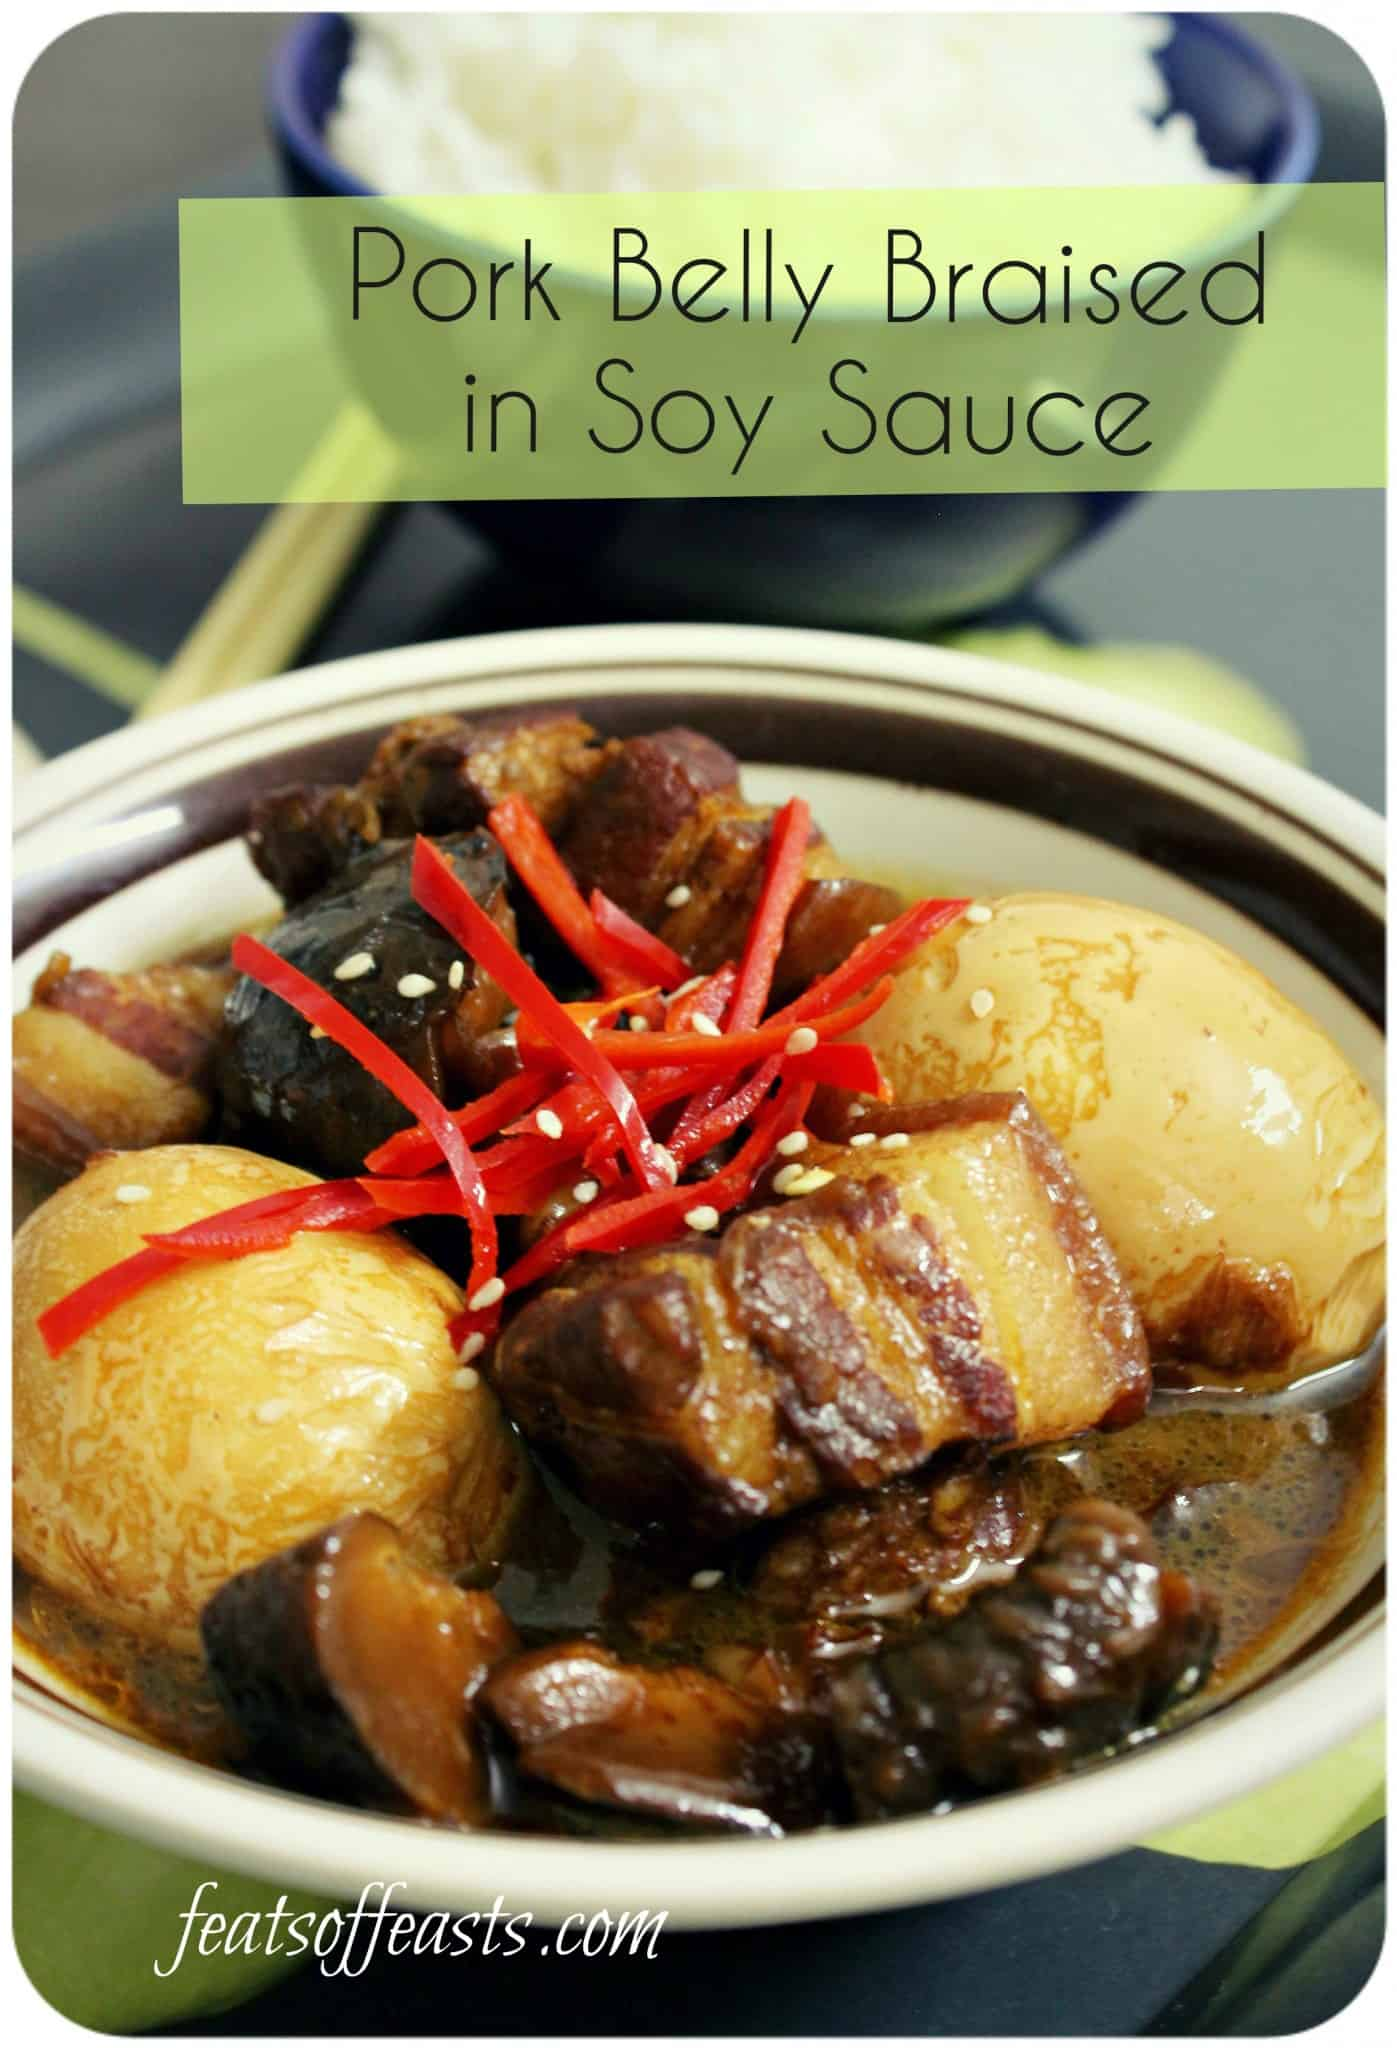 Pork Belly Braised in Soy Sauce (Tau Eu Bak)